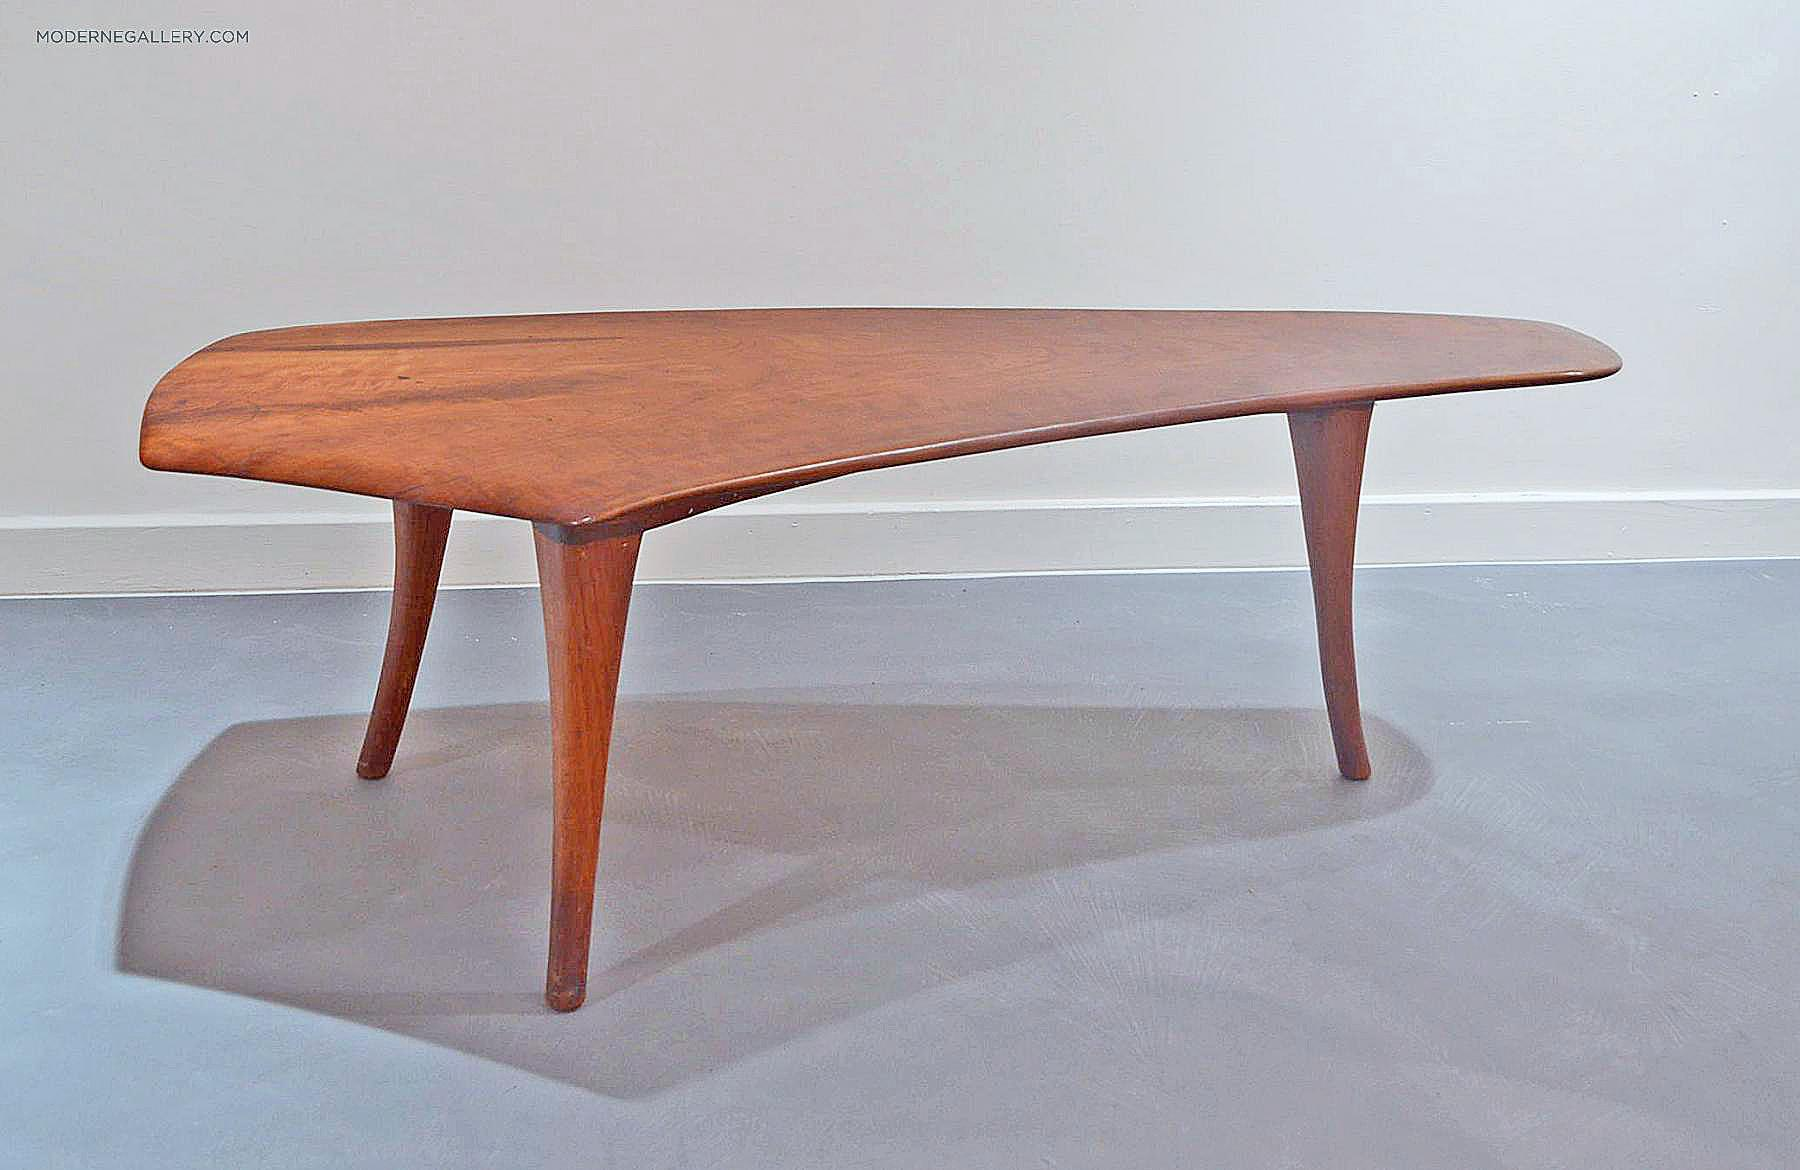 cherry coffee table | moderne gallery